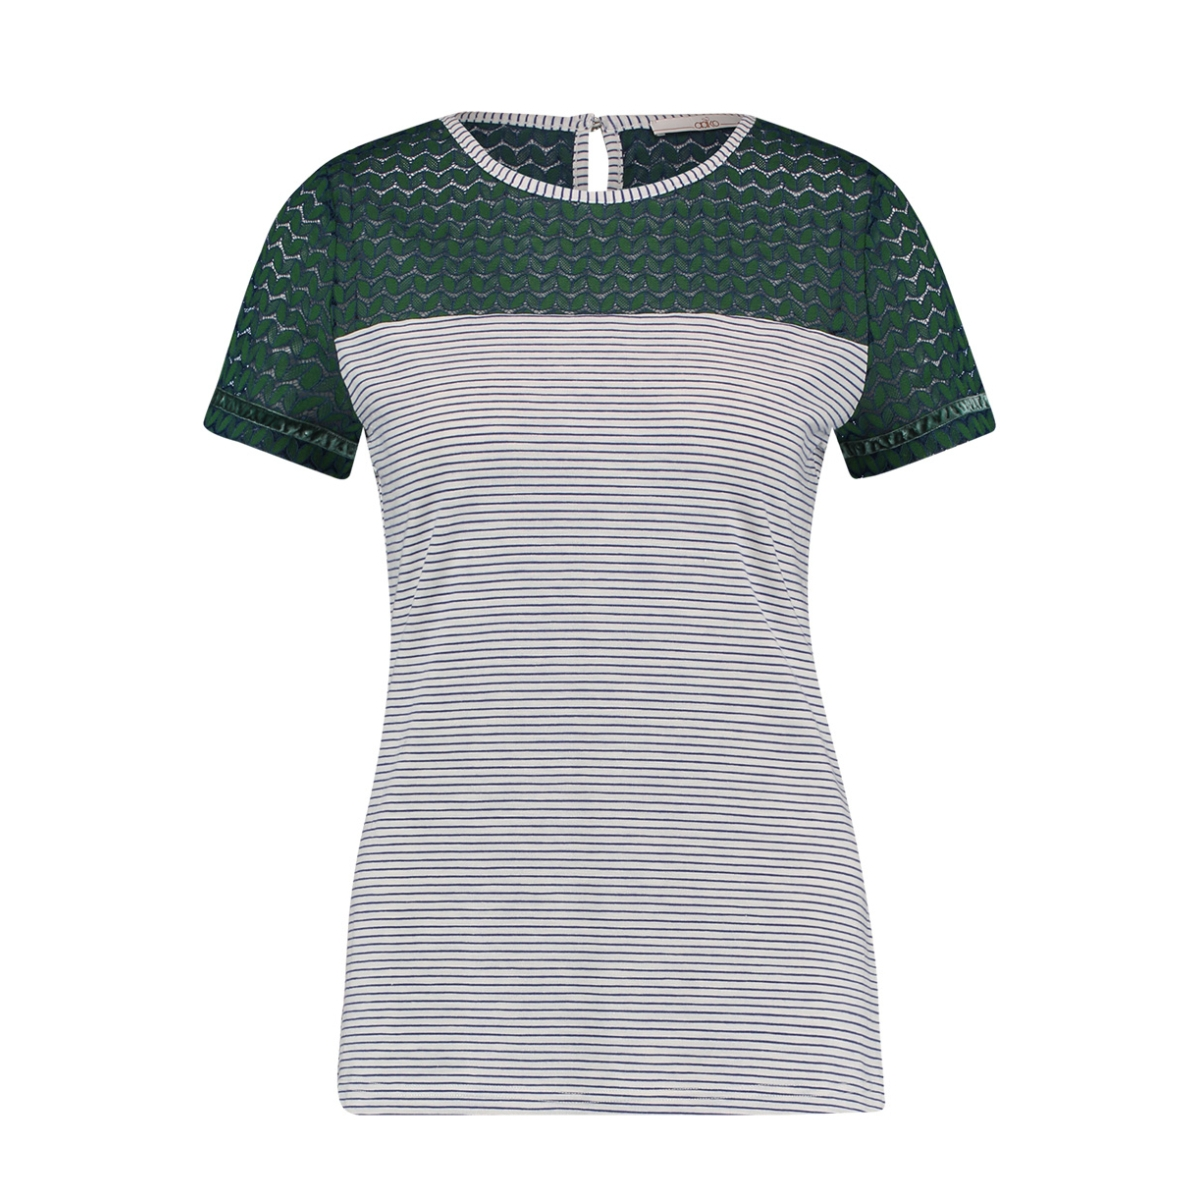 faina co 248 aaiko t-shirt emerald green